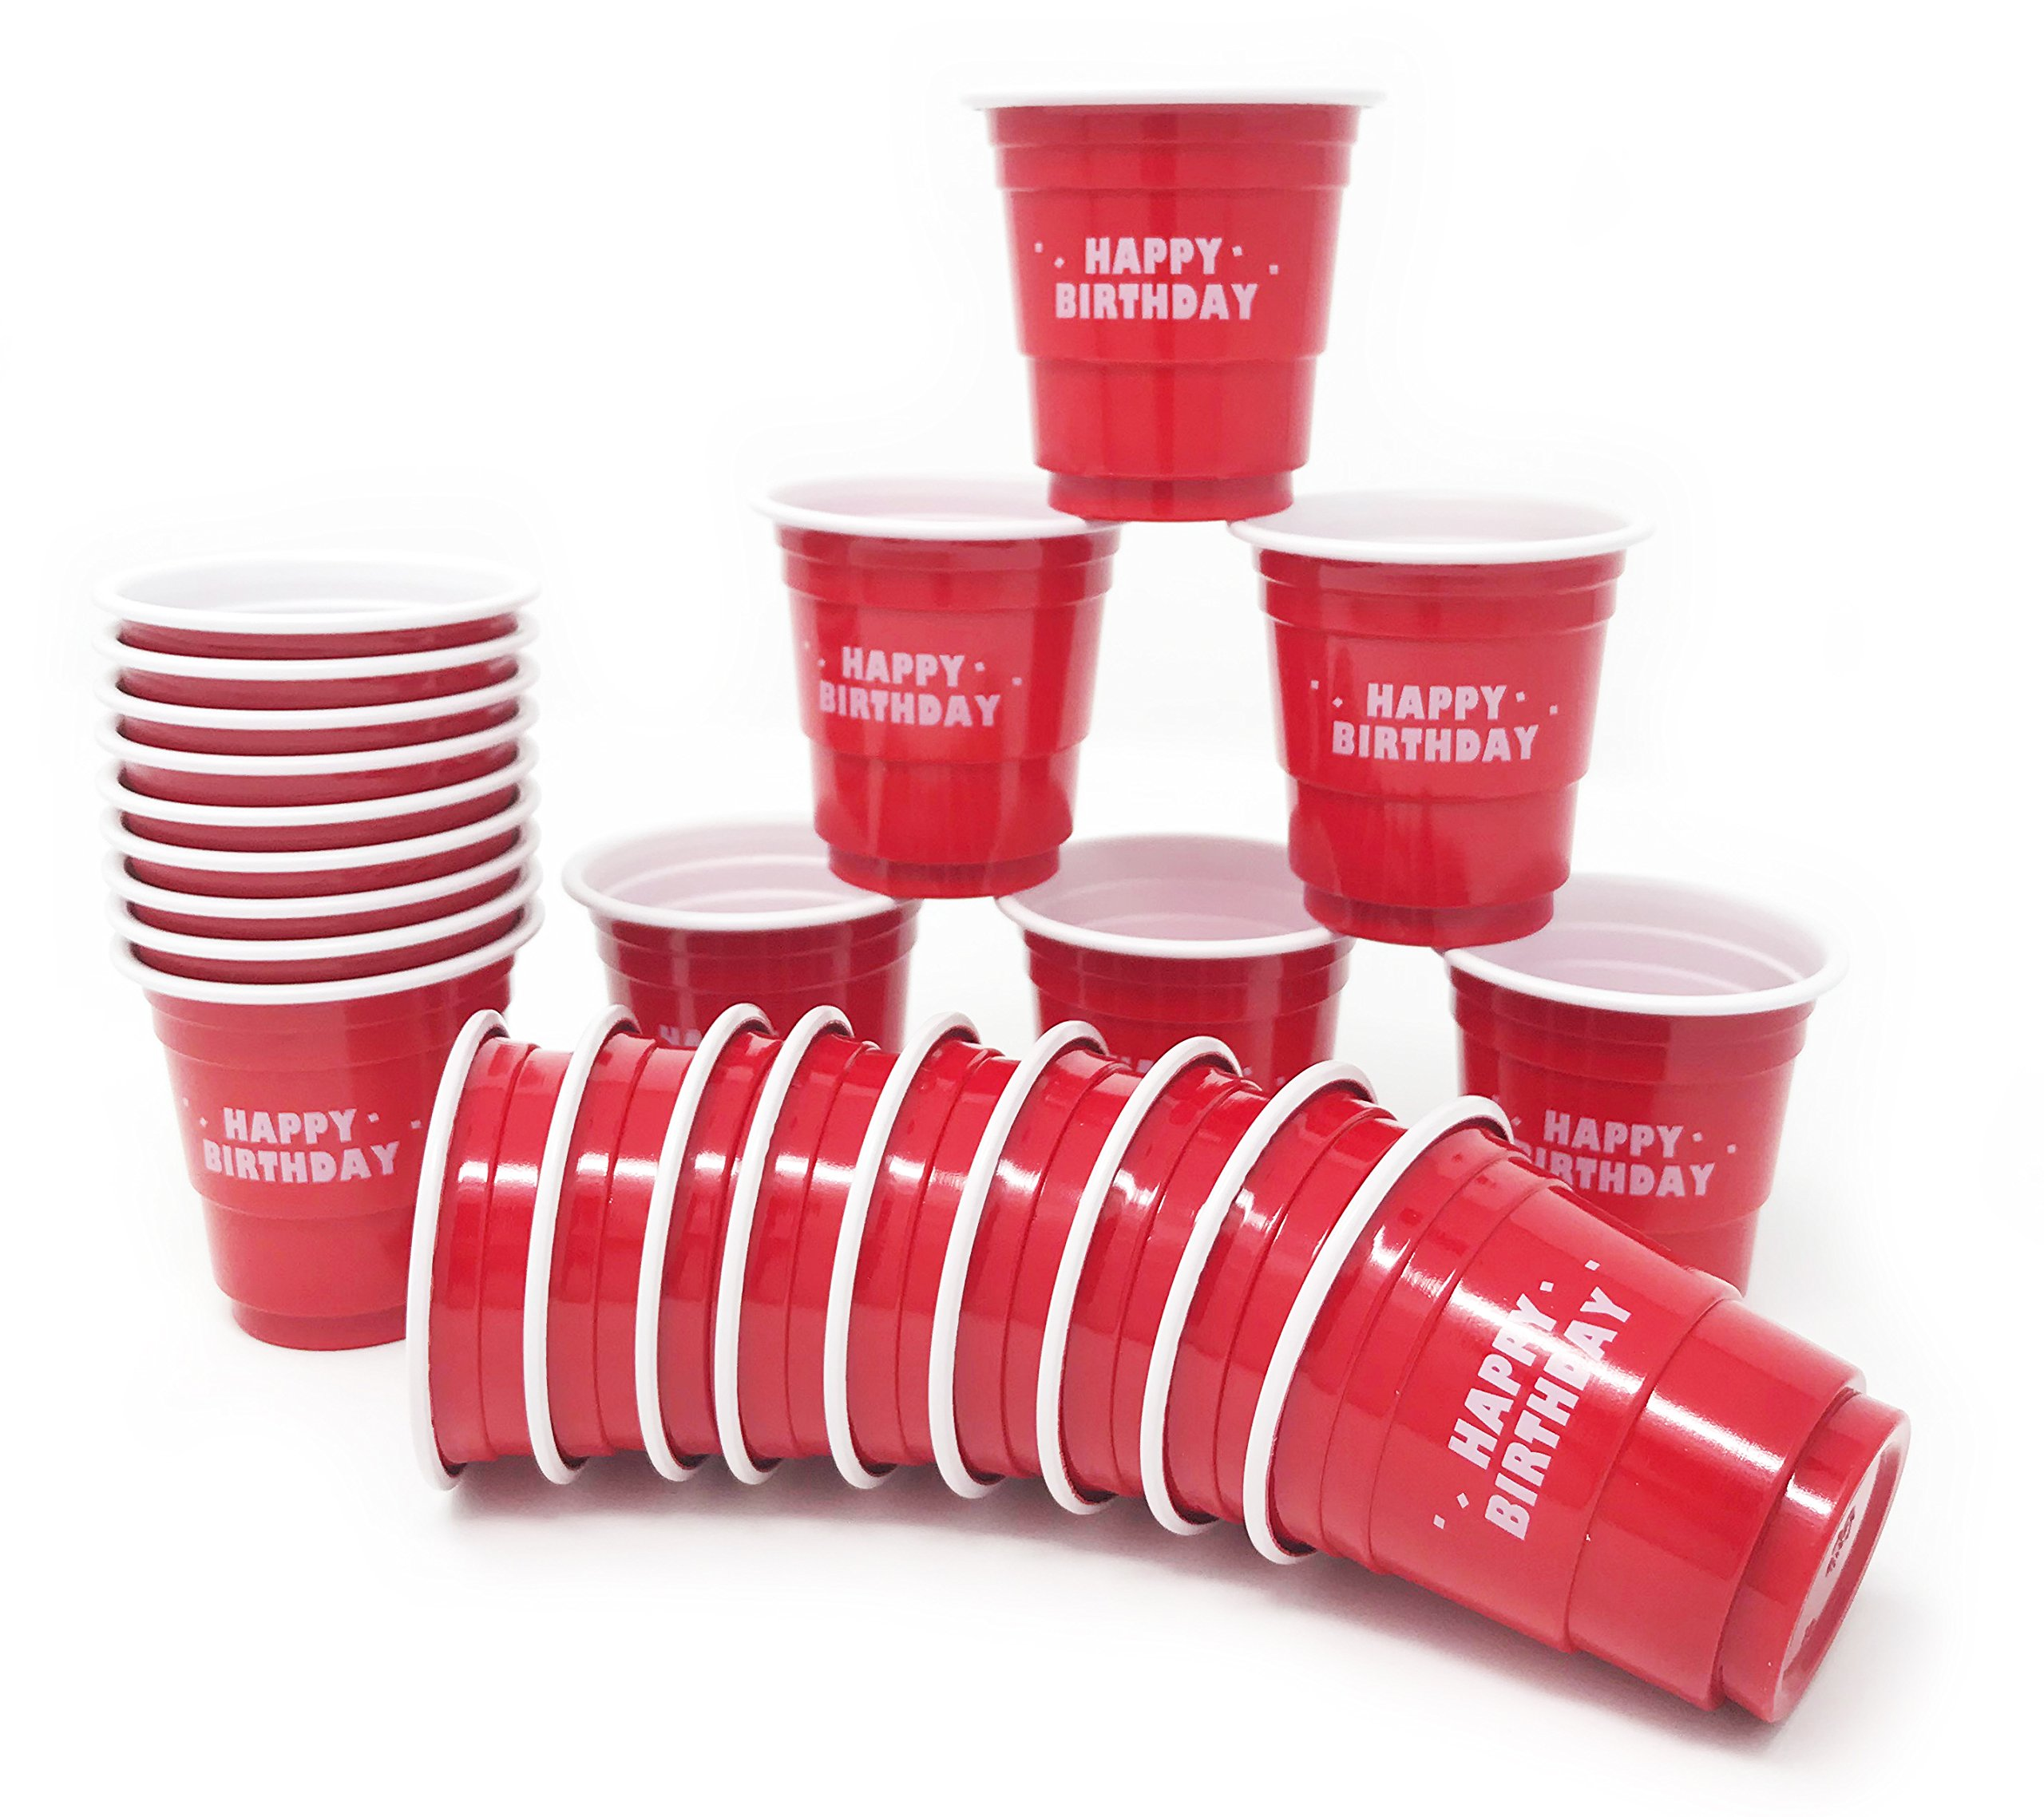 24ct Mini Red Happy Birthday Cups 2oz Plastic Disposable Shot Glasses Party Shooter Beer Pong Jello, Red by Express Novelties Online